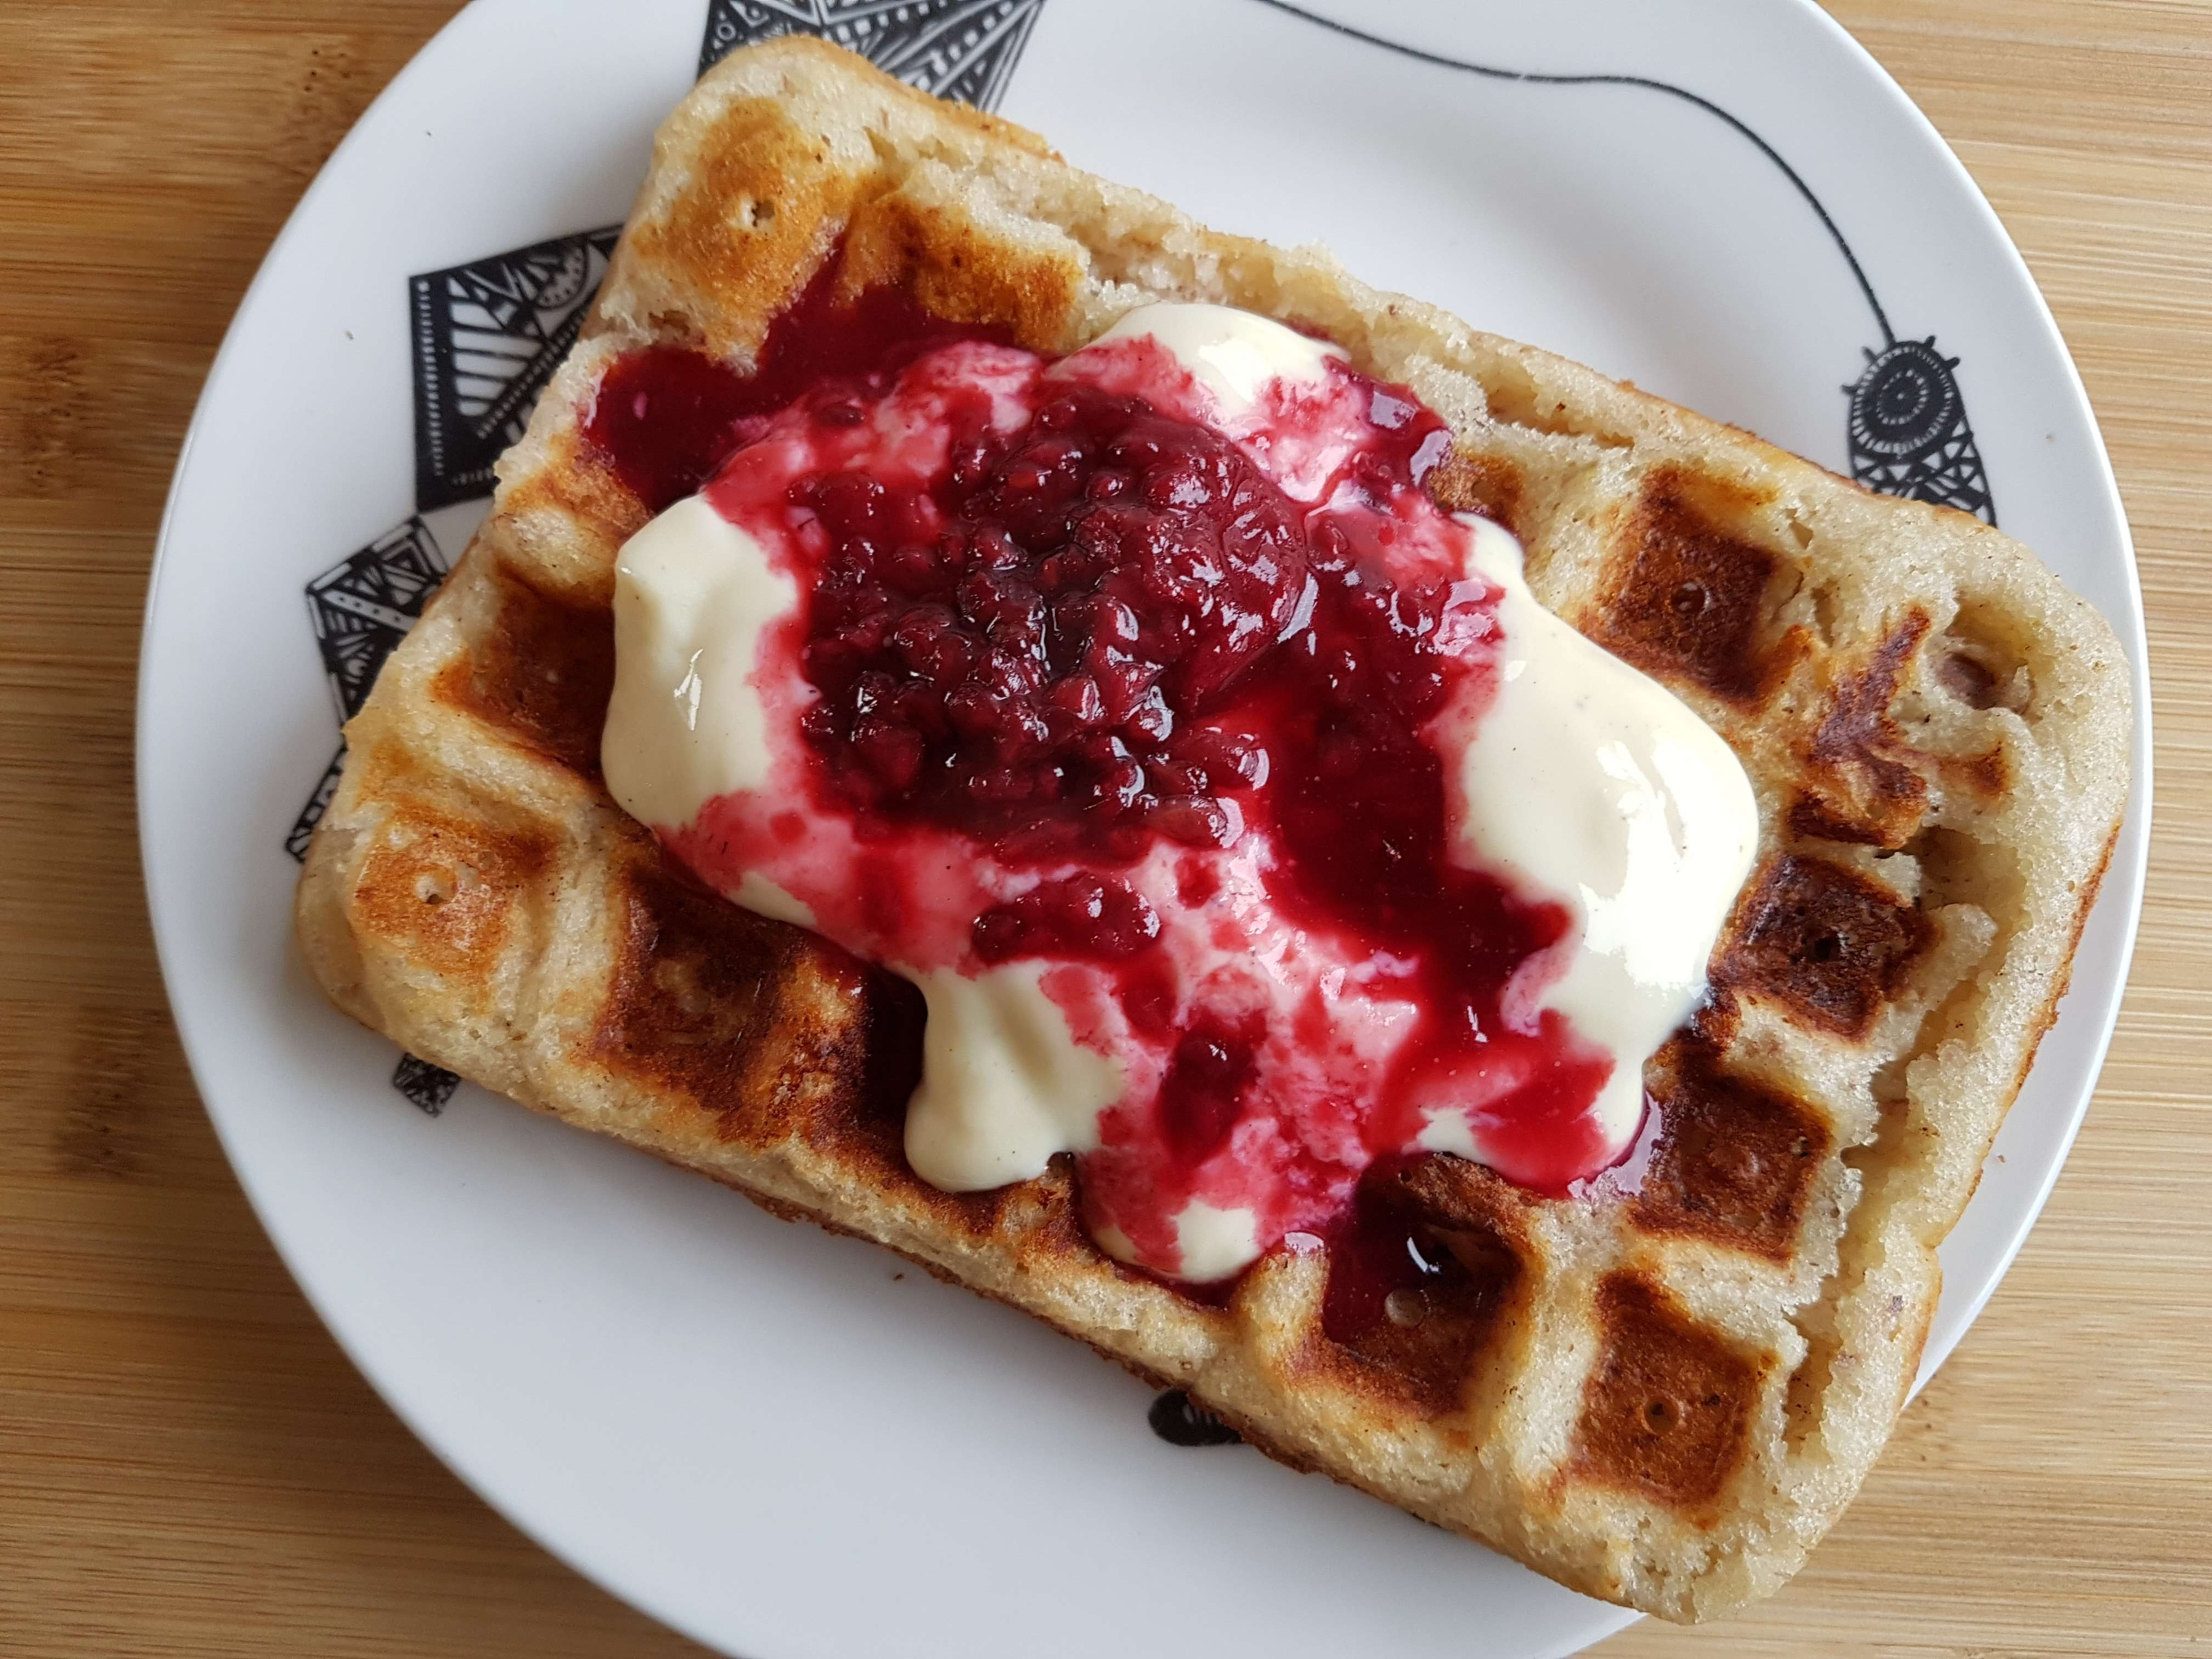 Gluten free and vegan waffles not just for breakfast (GF,V,VG)